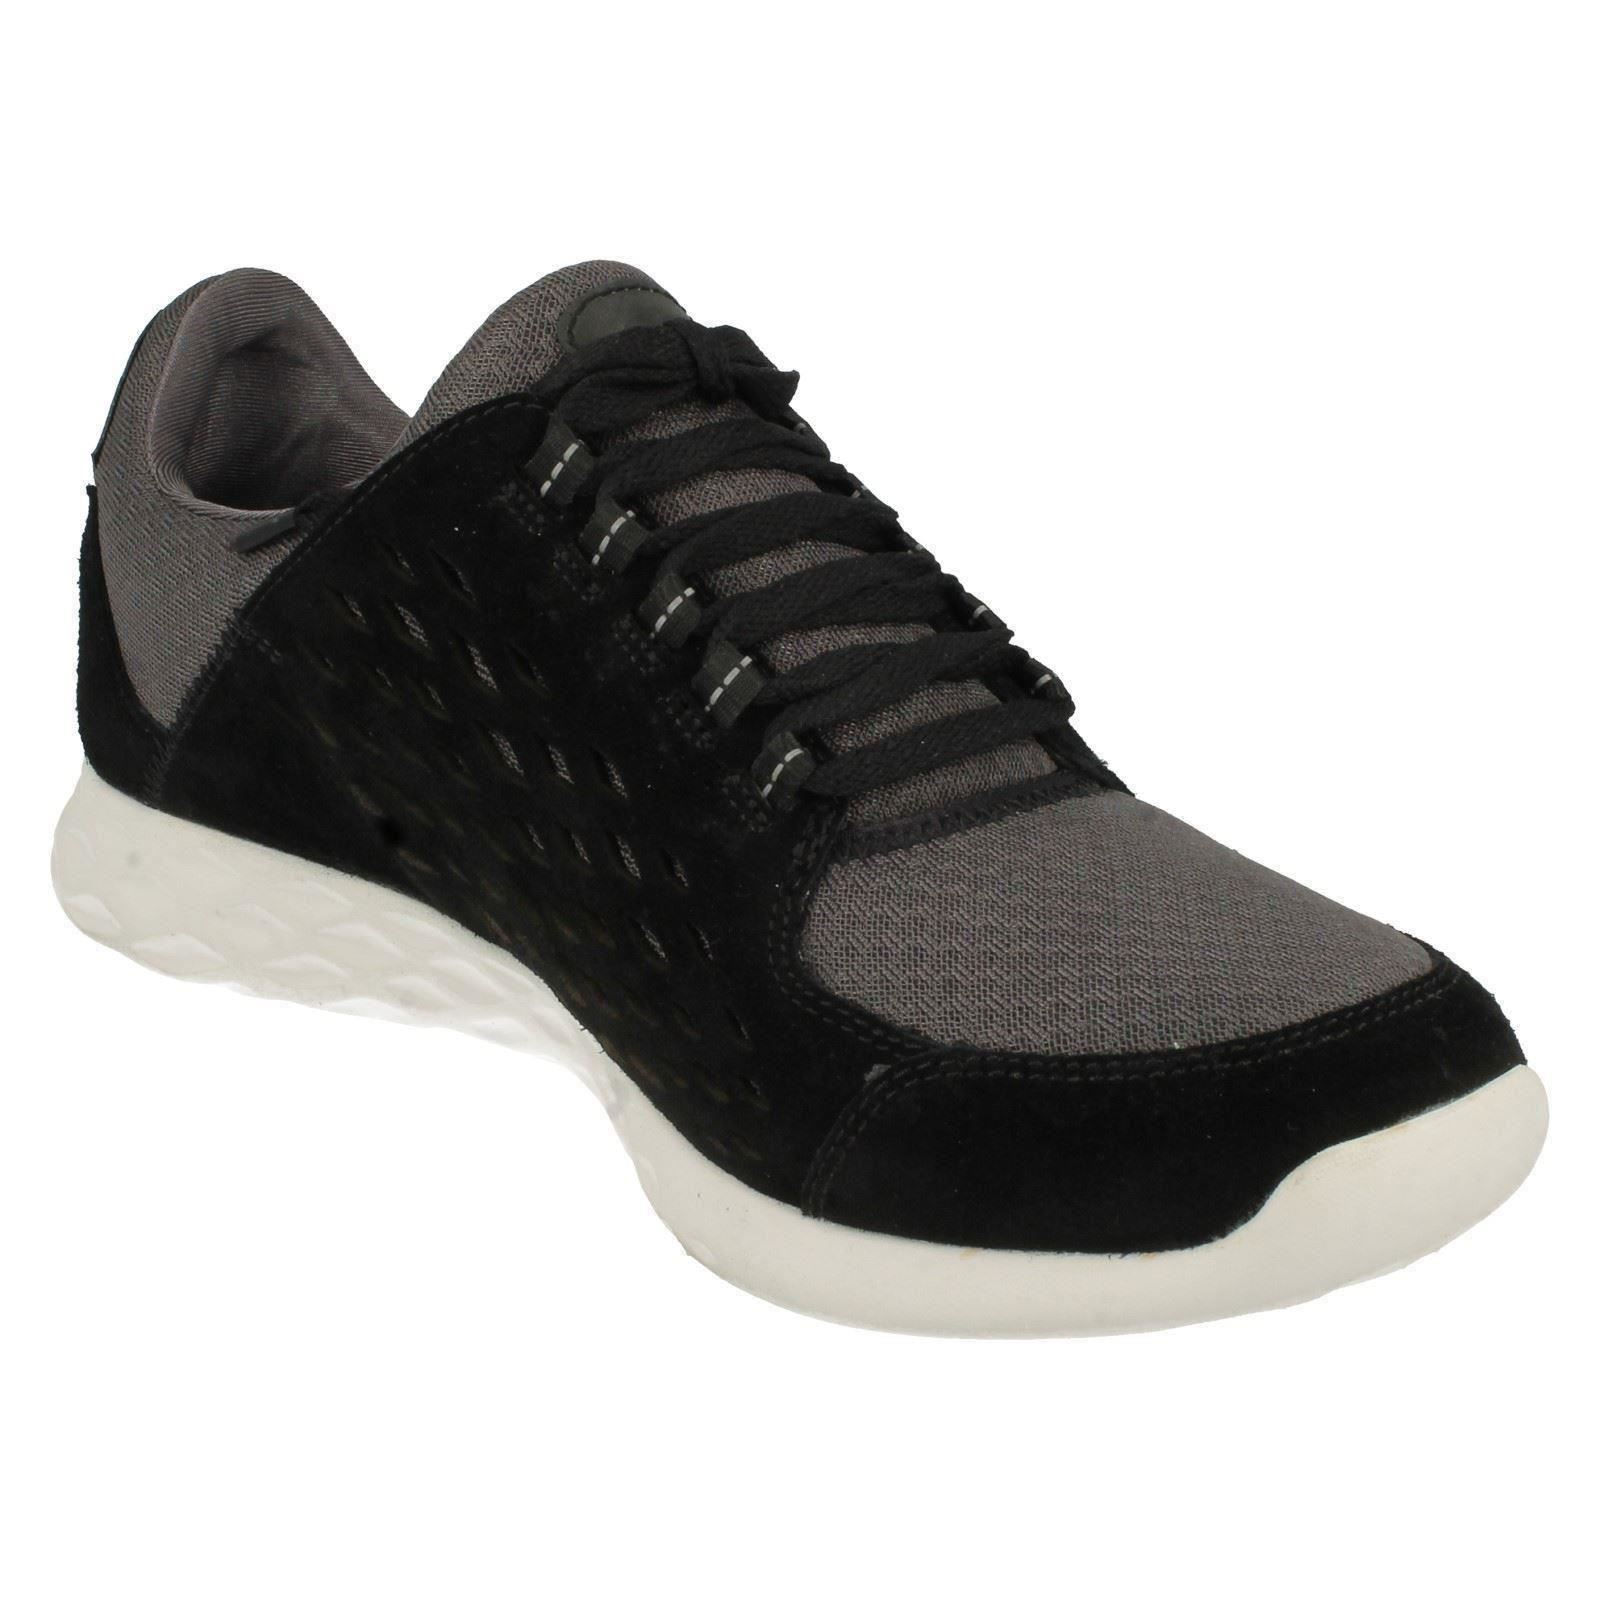 Clarks Mens Casual Active Shoes Seremax Lace